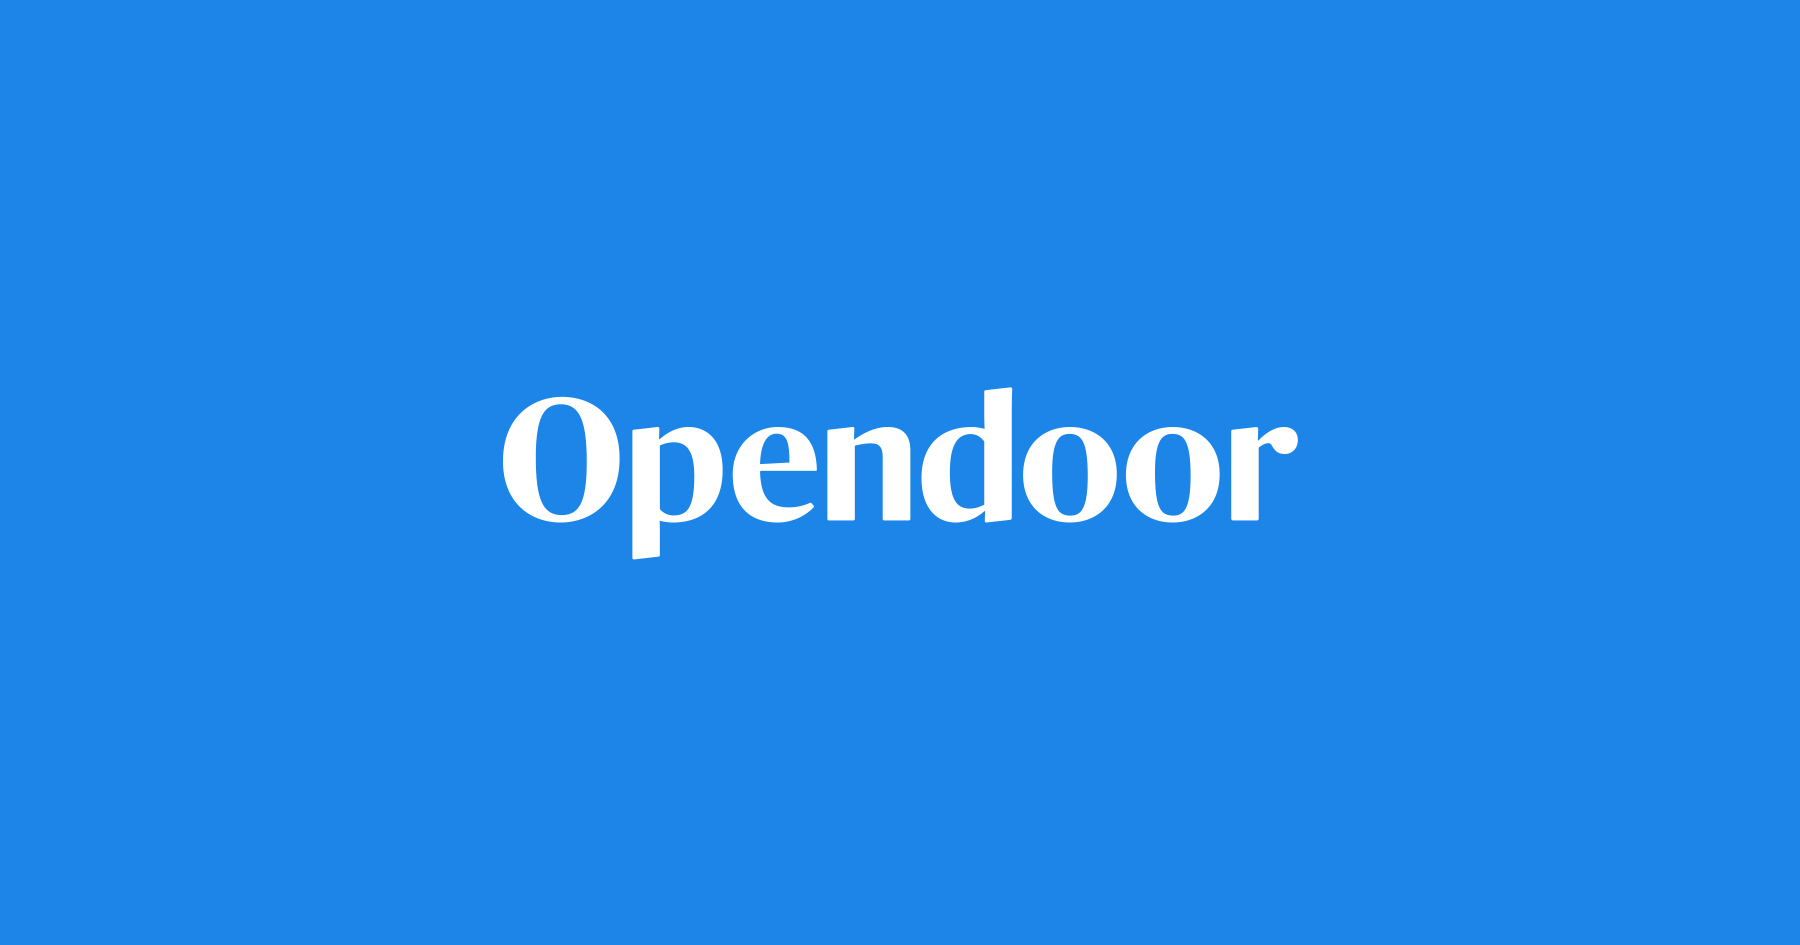 sc 1 st  Opendoor & Opendoor | Careers u0026 Job Opportunities